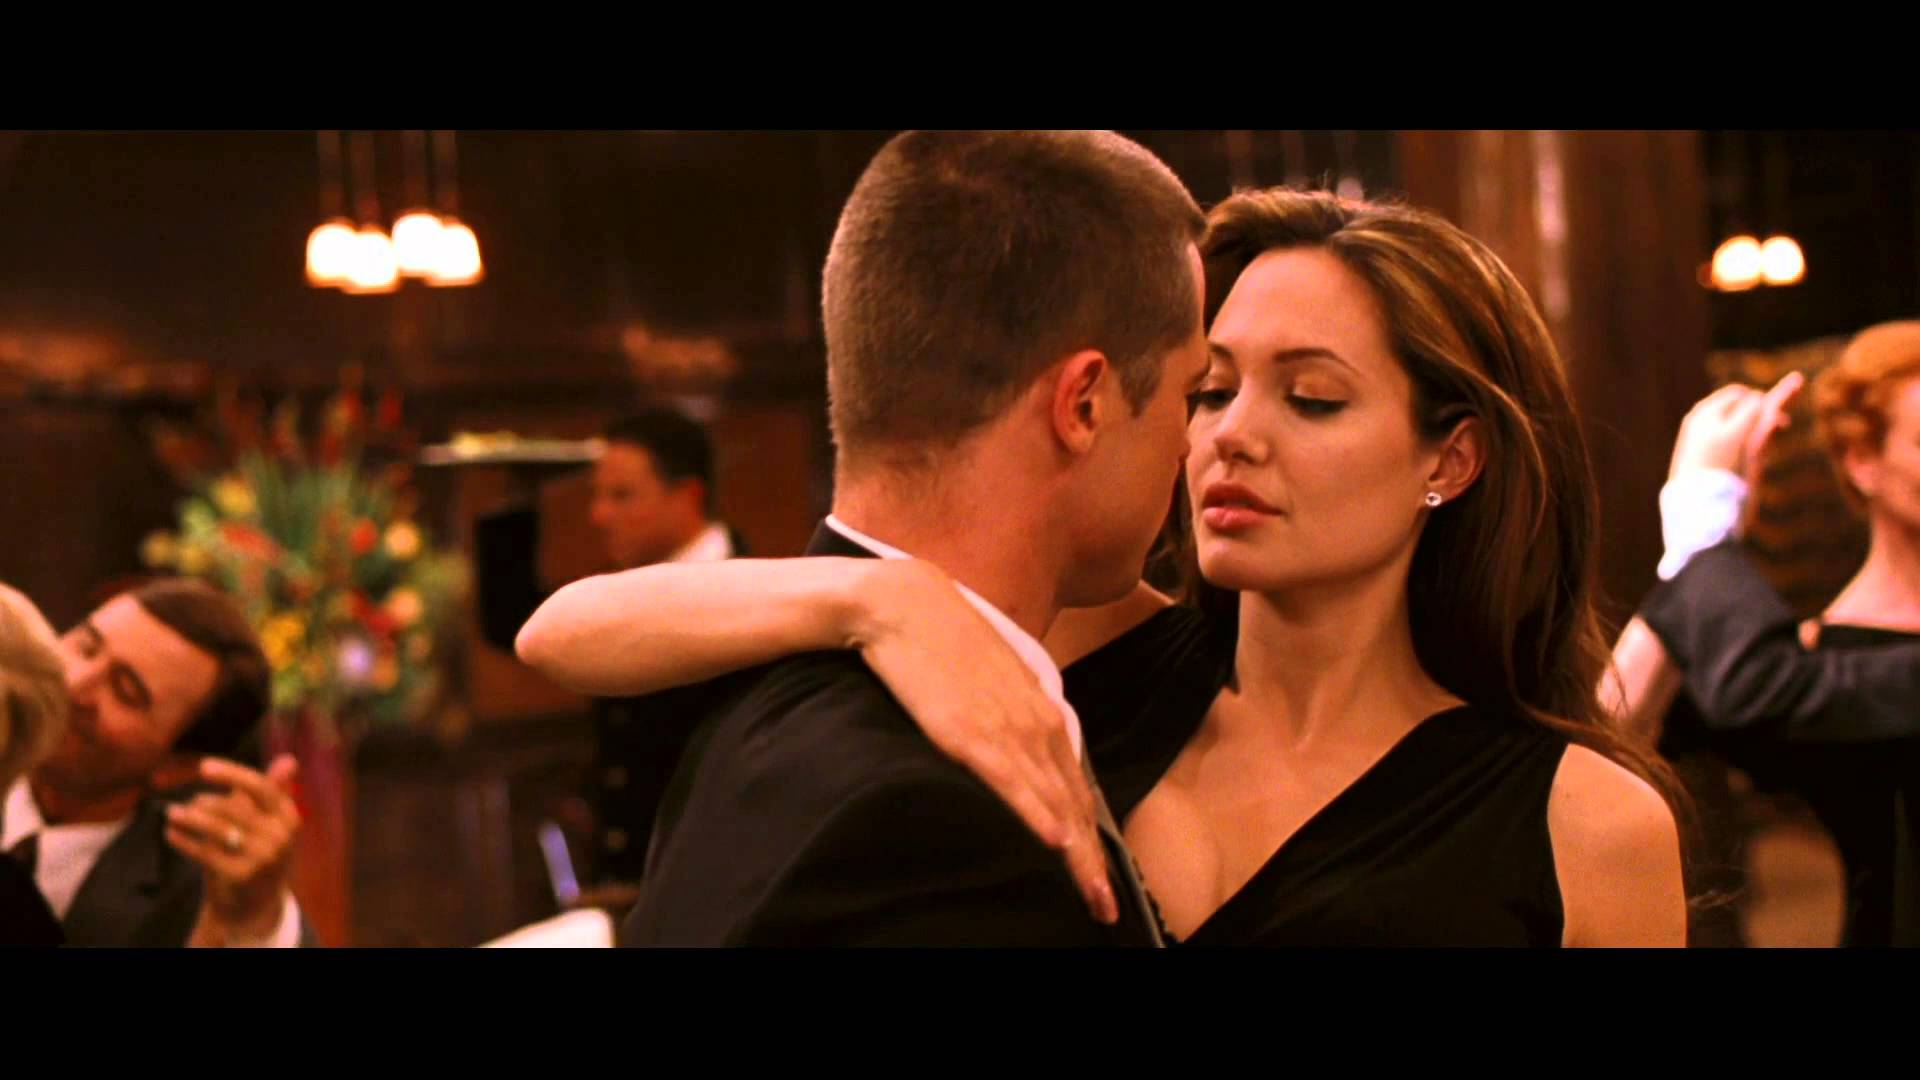 Mr. & Mrs. Smith High Quality Background on Wallpapers Vista